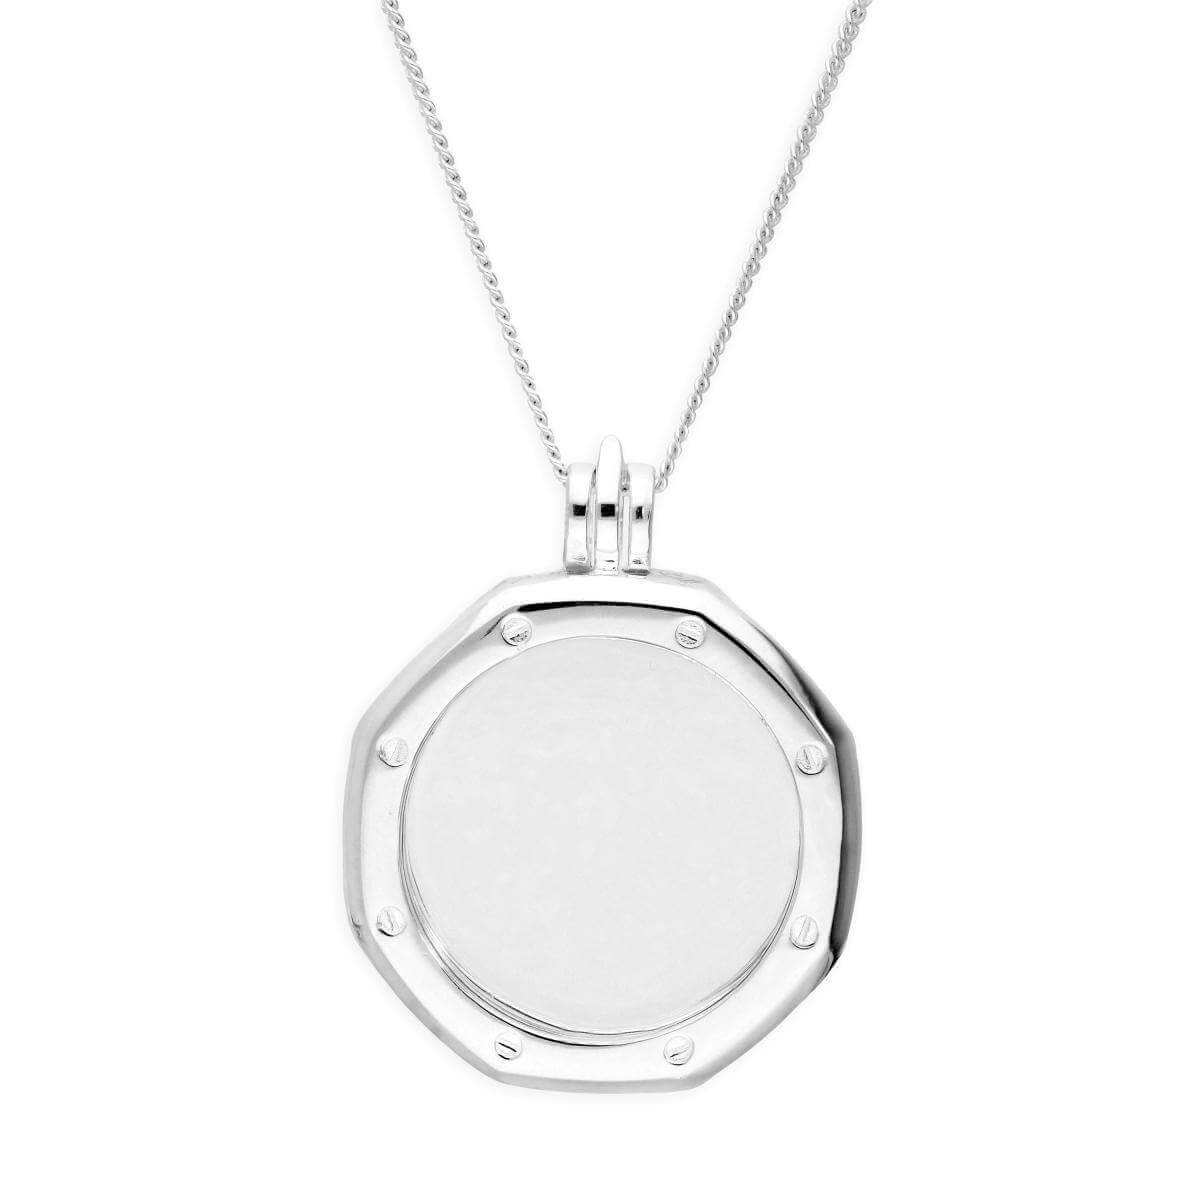 Large Sterling Silver Octagonal Clock Face Floating Charm Locket on Chain 16 - 24 Inches